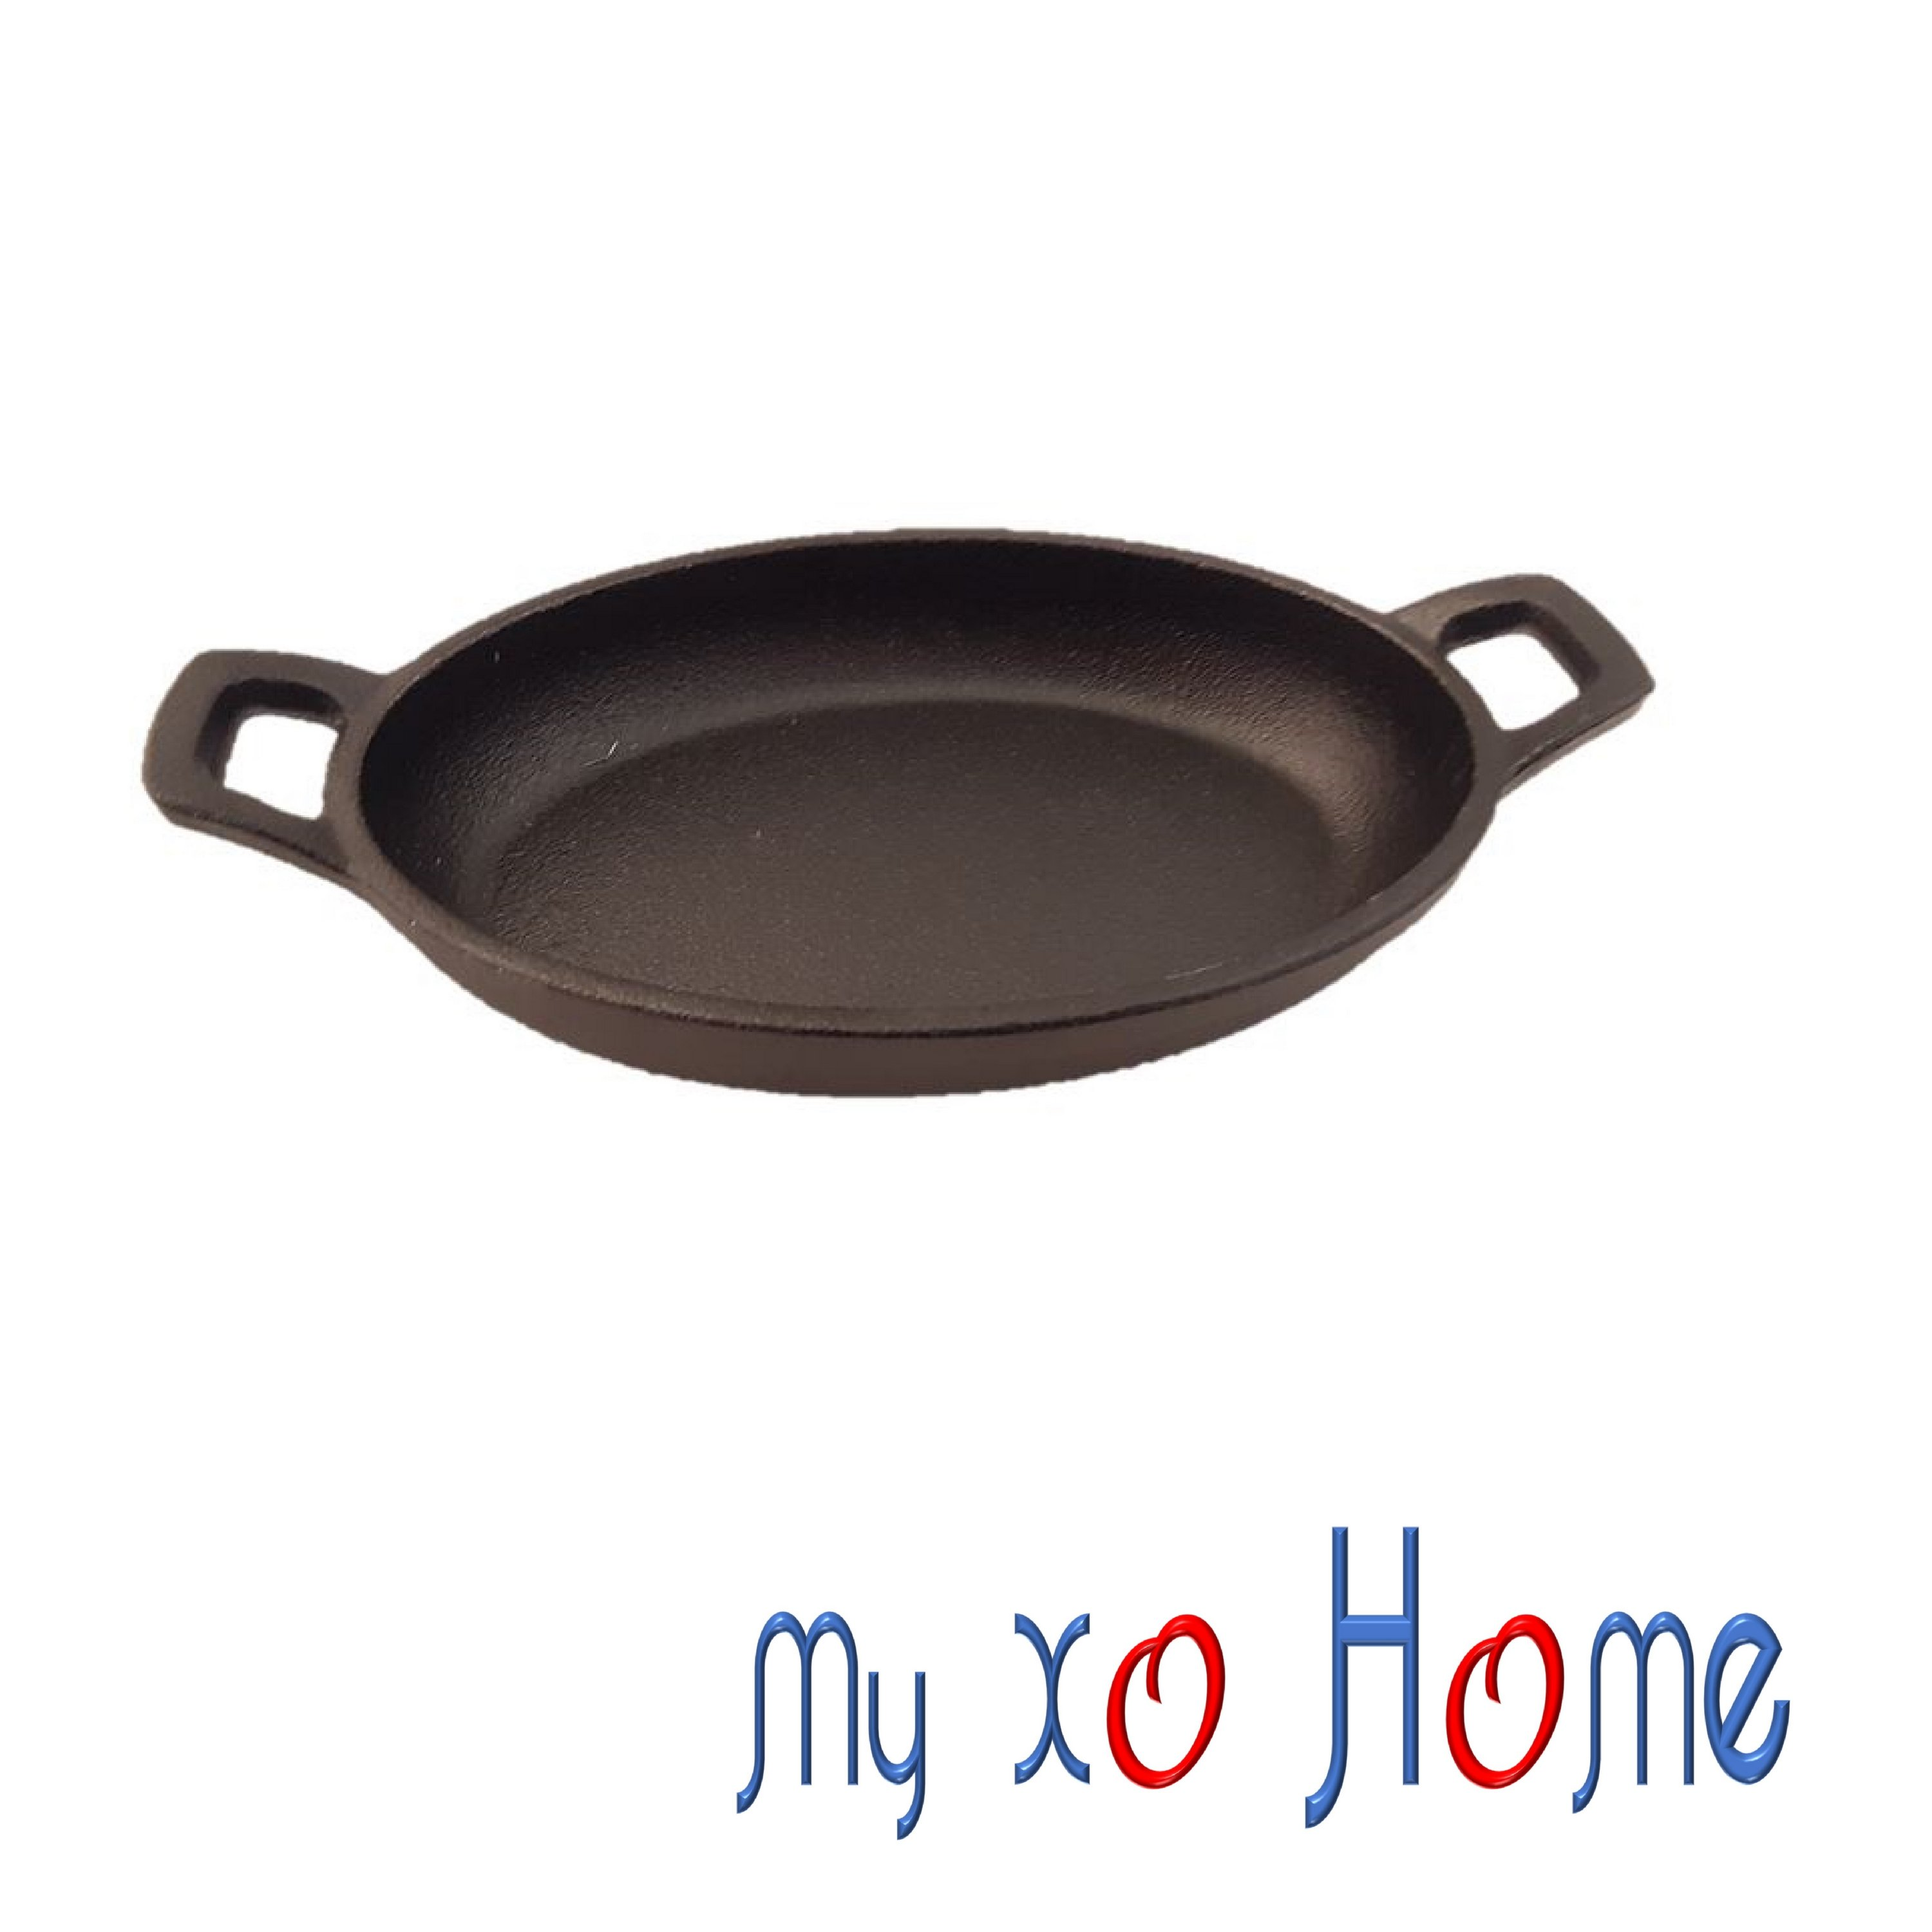 MyXOHome Oval Cast Iron Frying Pan / Skillet with Handles